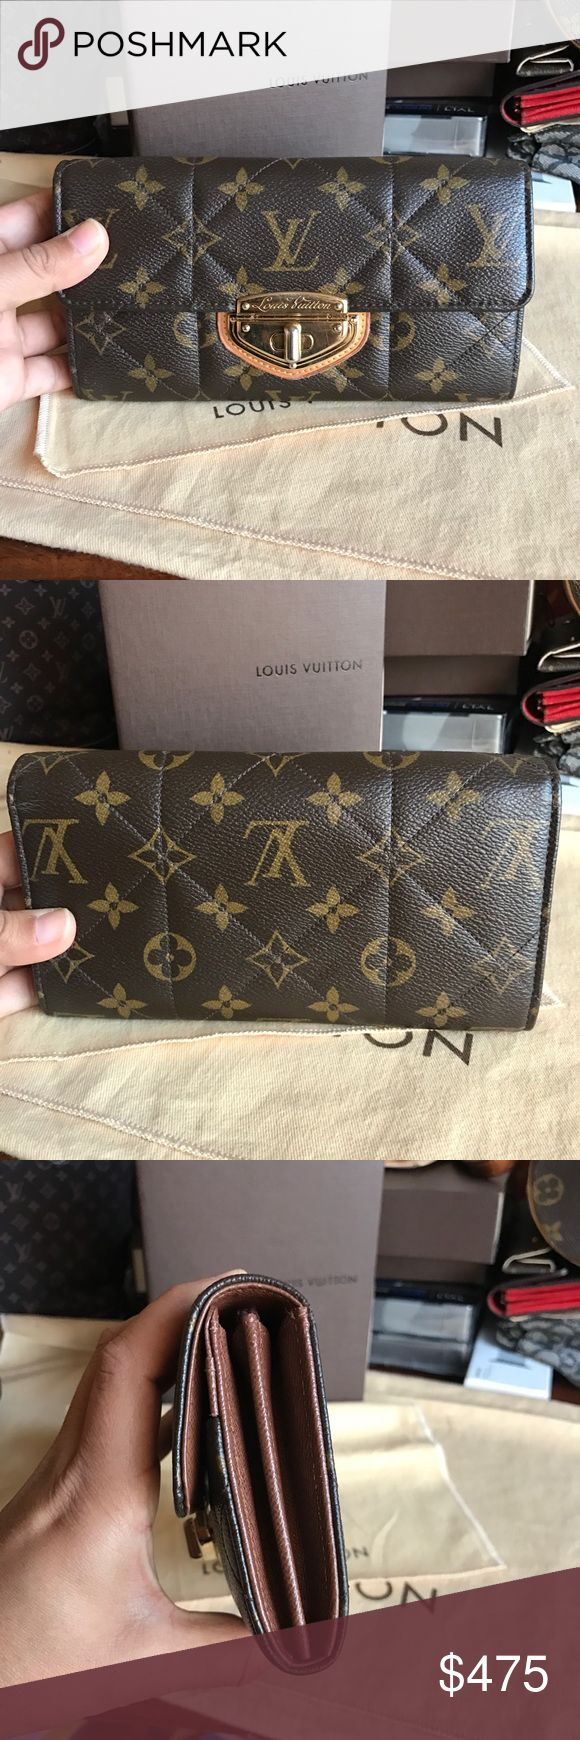 ❤️LAST PRICE❤️Louis Vuitton Etoile Sarah Wallet. Authentic Louis Vuitton Sarah wallet in awesome condition. It shows very little wear, inside is clean. Canvas is in beautiful condition as well. Front closure has scratches and color is a little faded. One of the screws on closure came off. It does not affect the wallets functionality at all. Plenty of space to keep 10 credit cards, IDs, zipped coin compartment and plenty of room for receipts, bills. I will include a box and dustbag. ❌NO…